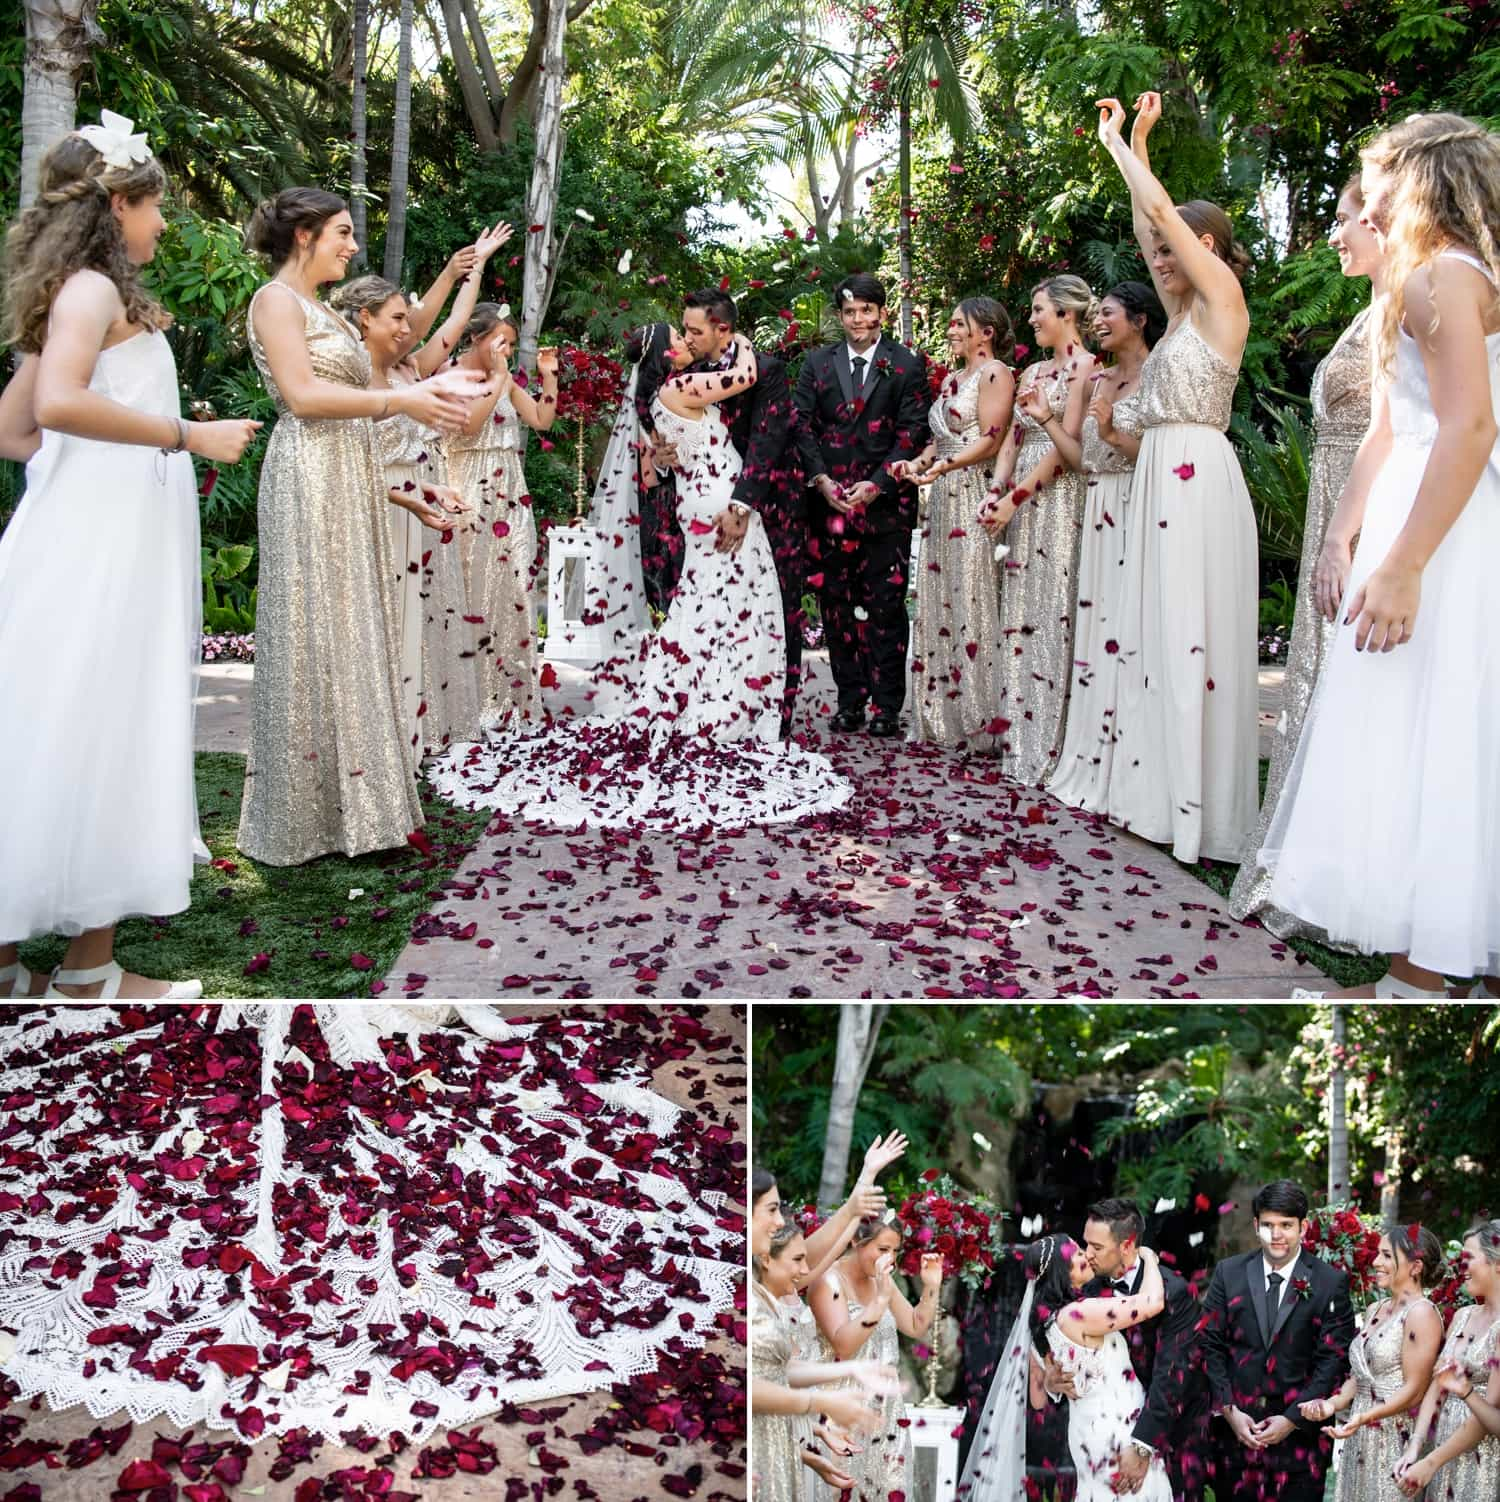 Bridal party throwing rose pedals in the air over the bride and groom.